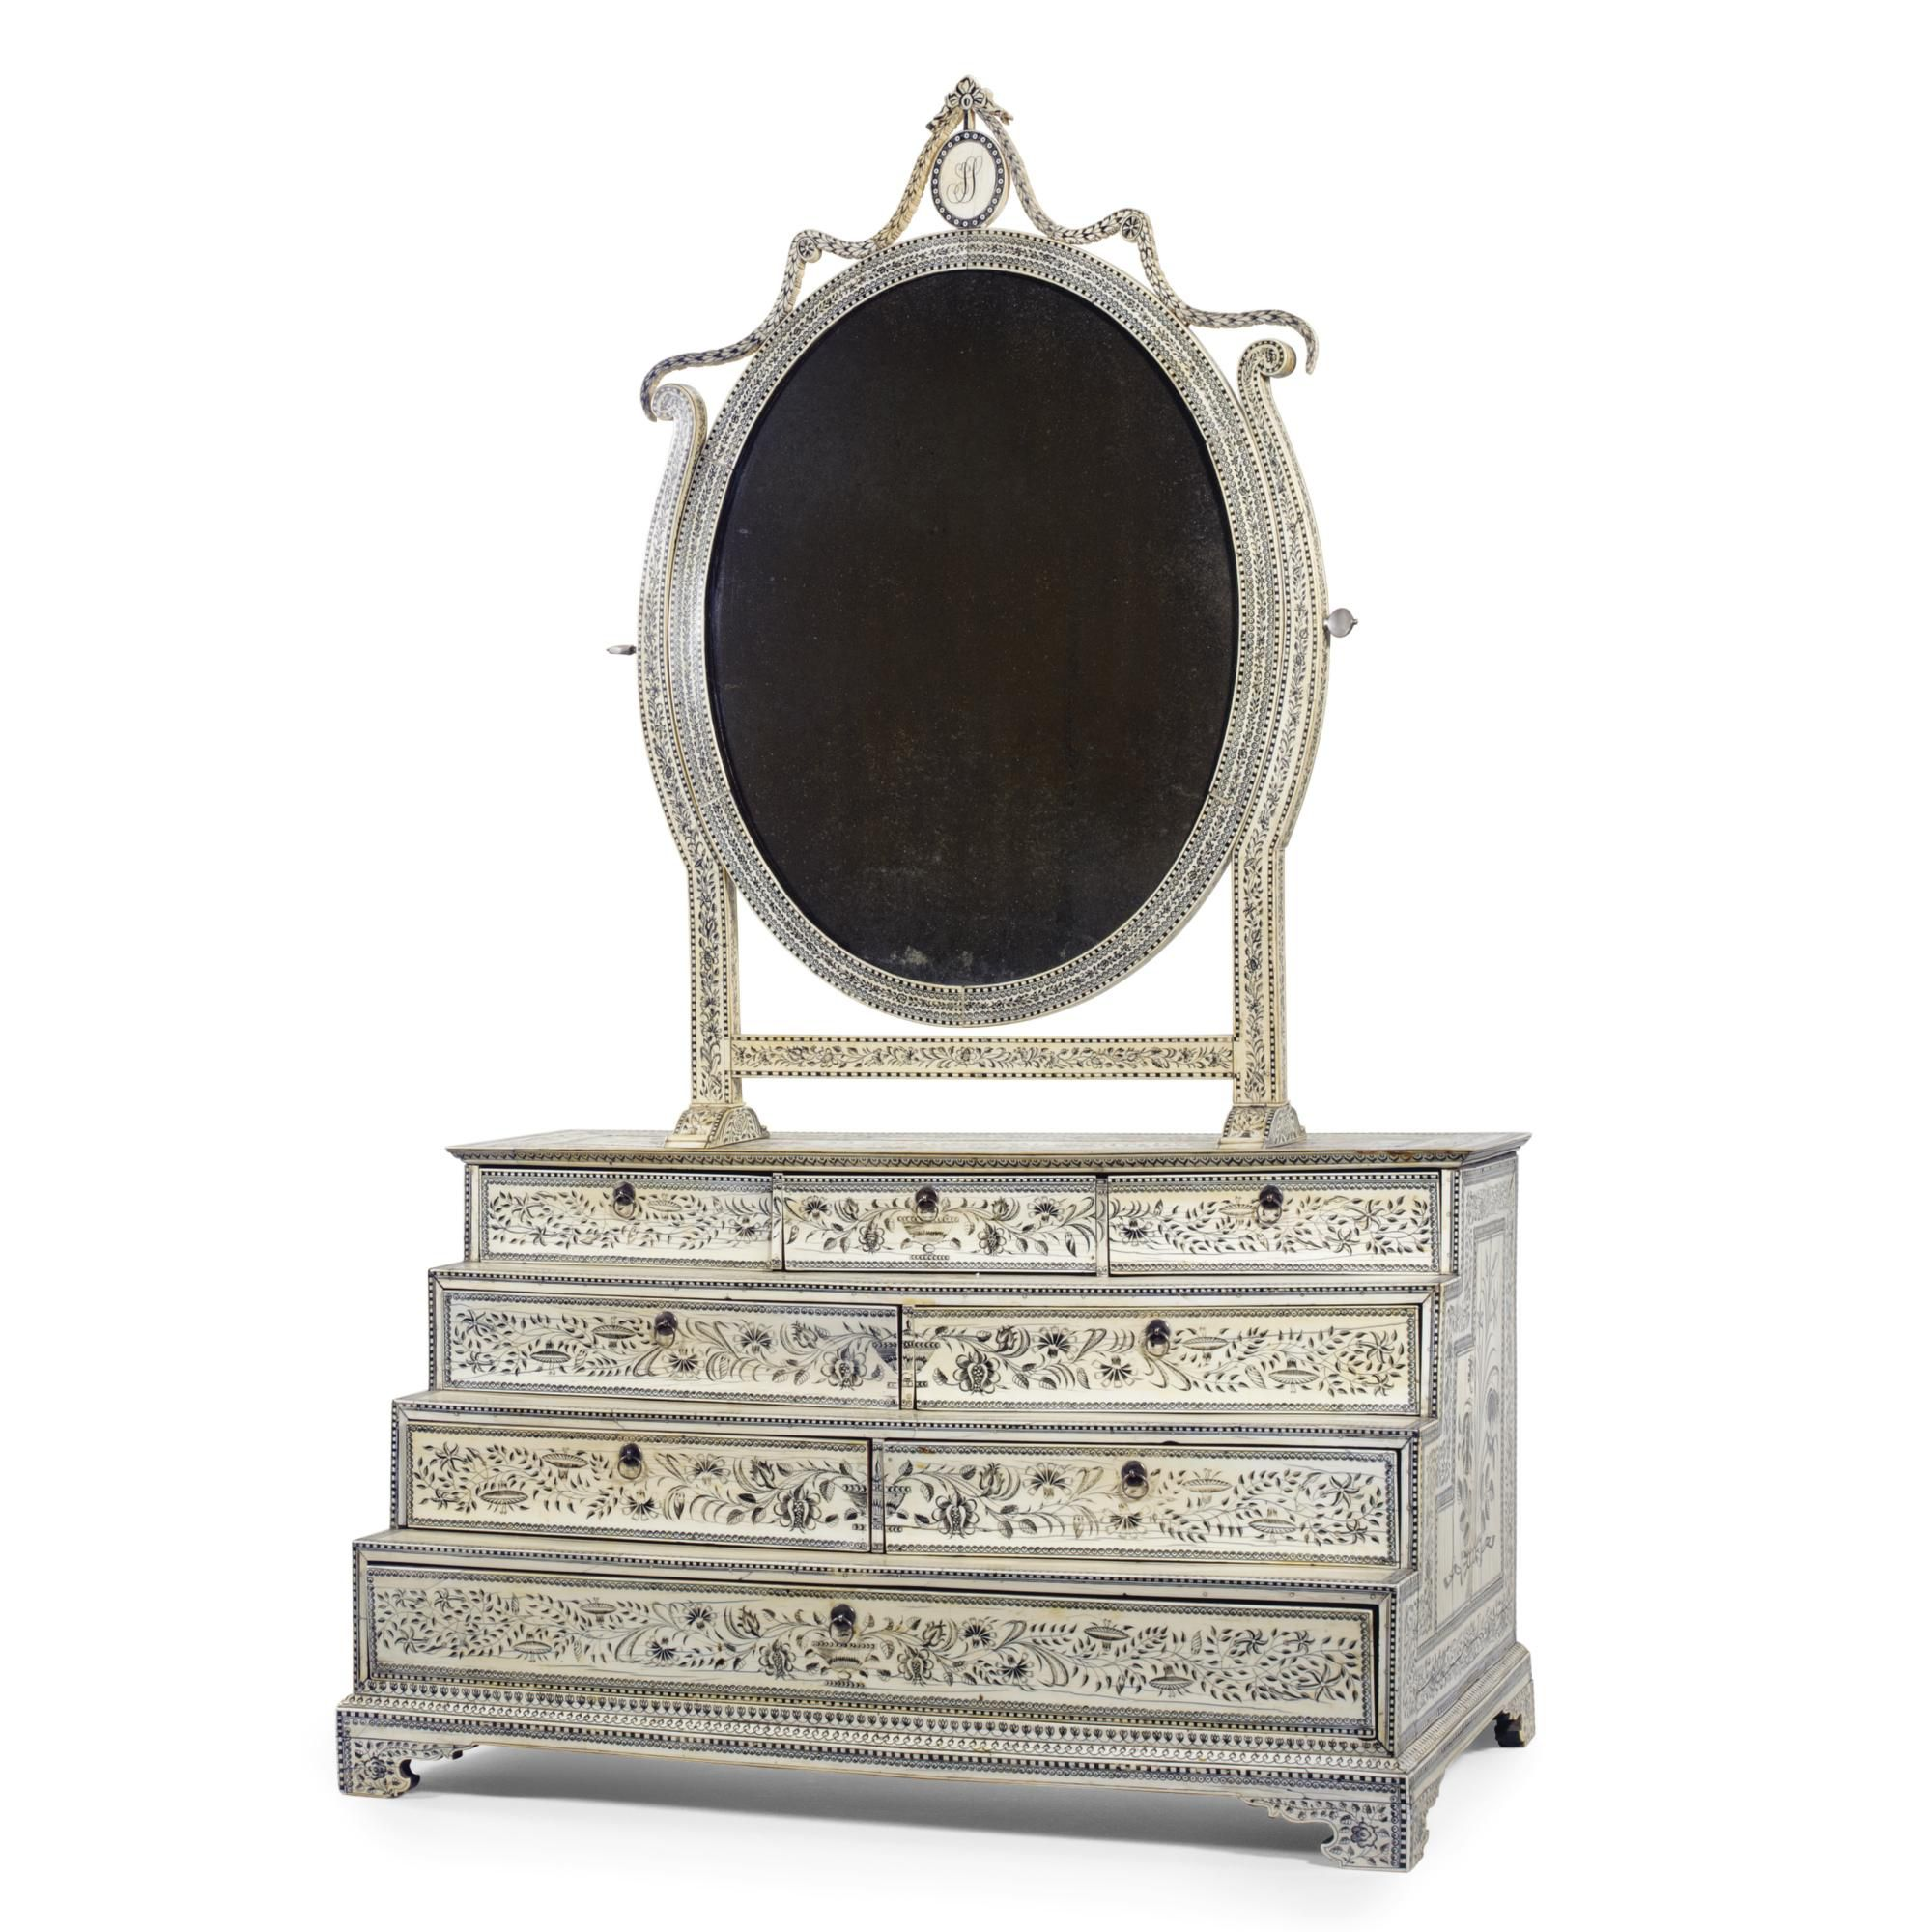 An Anglo-Indian ivory toilet mirror Vizagapatam, circa 1780 SOLD. 18,000 GBP